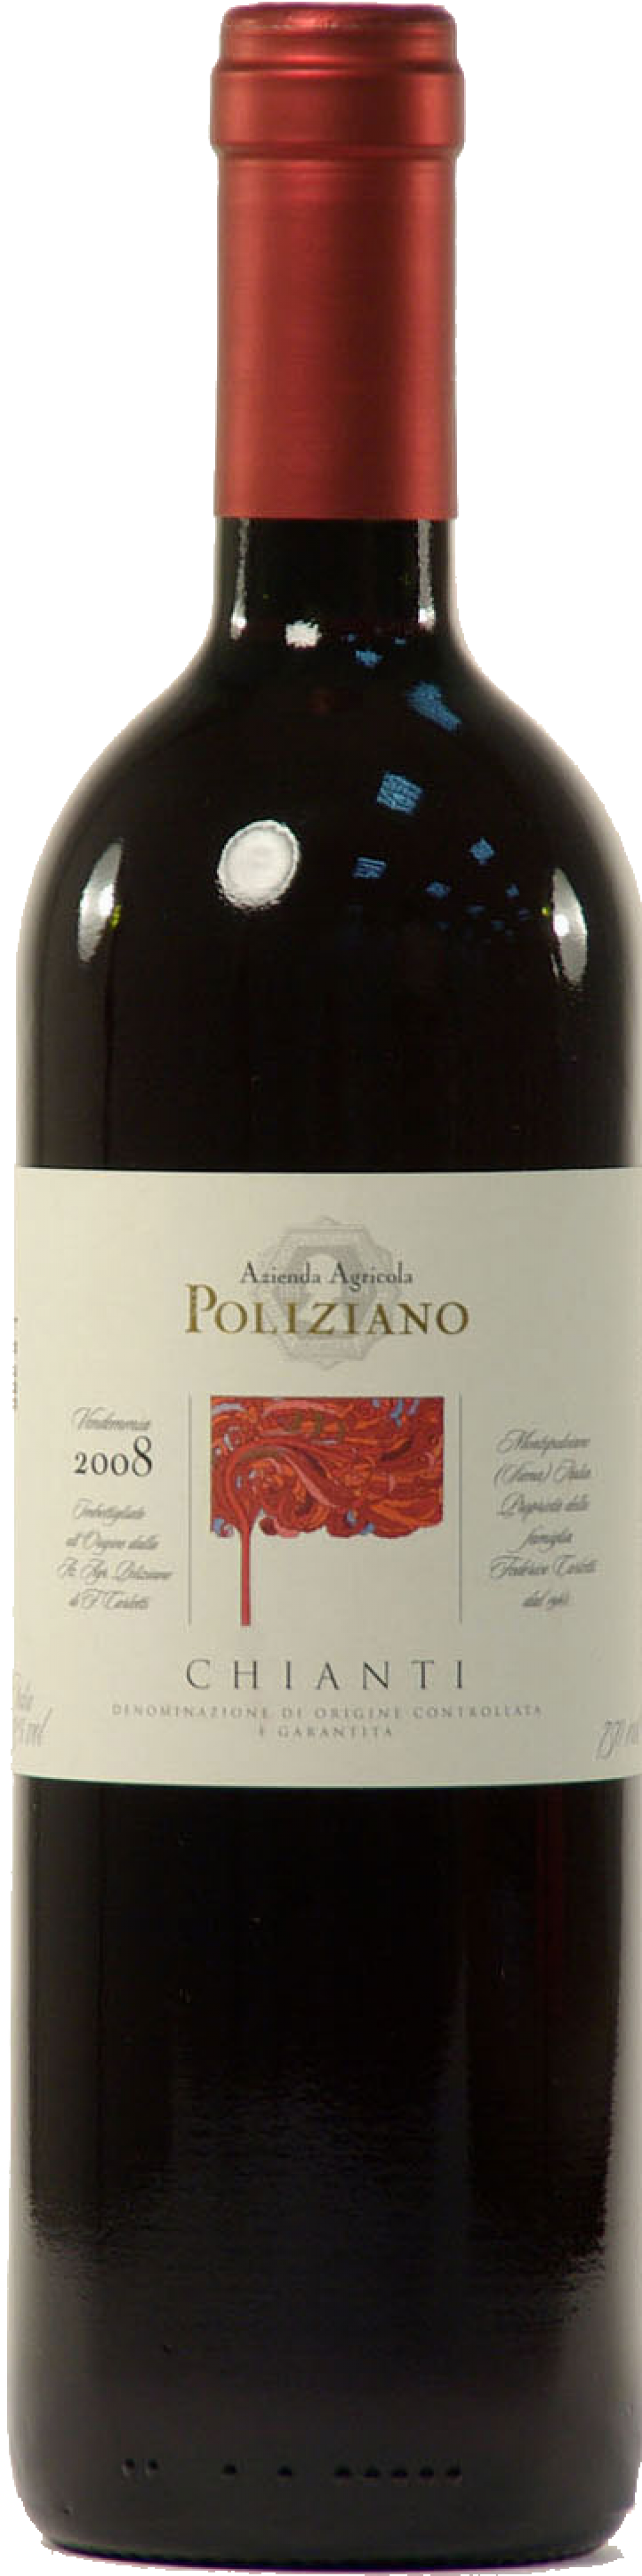 files/images/wines/Italy/poliziano-tuscany/2014 chianti.png